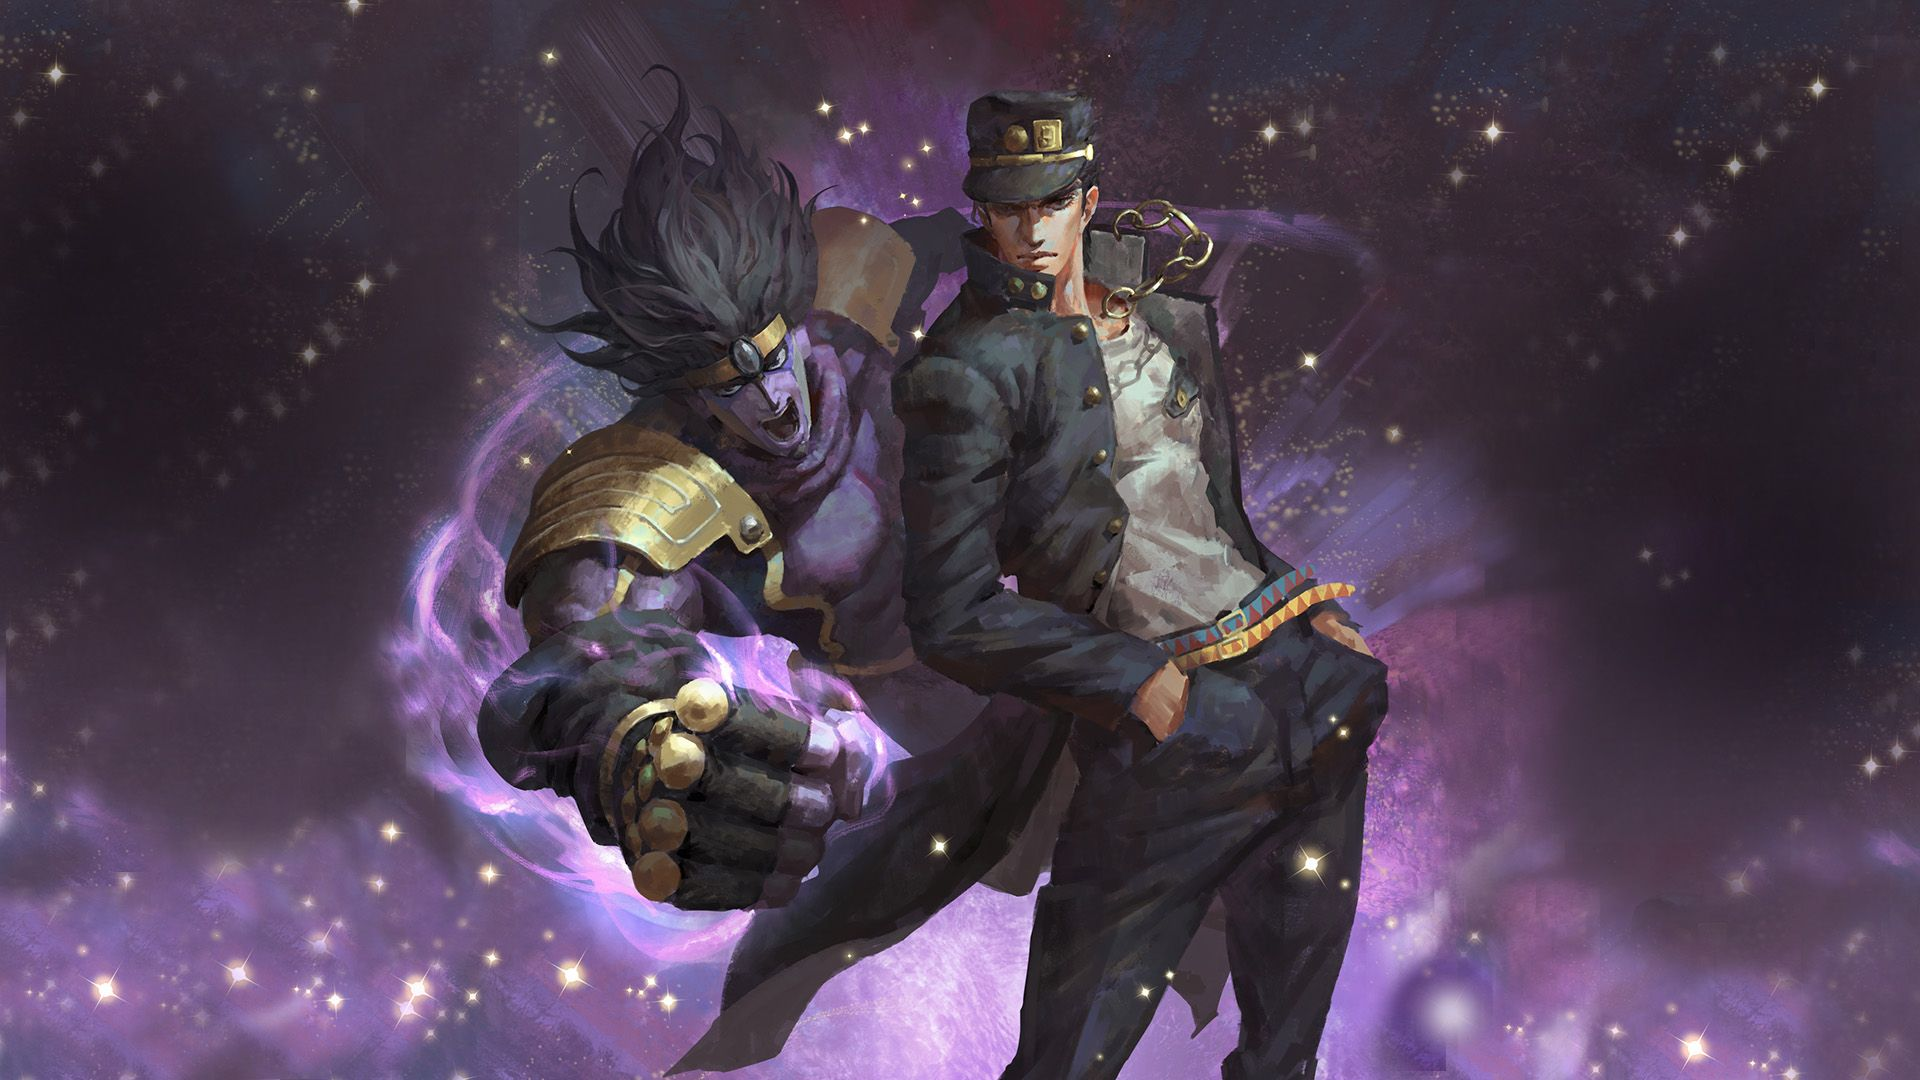 pin by chan terry on jojo in 2018 pinterest jojo bizarre jojo s